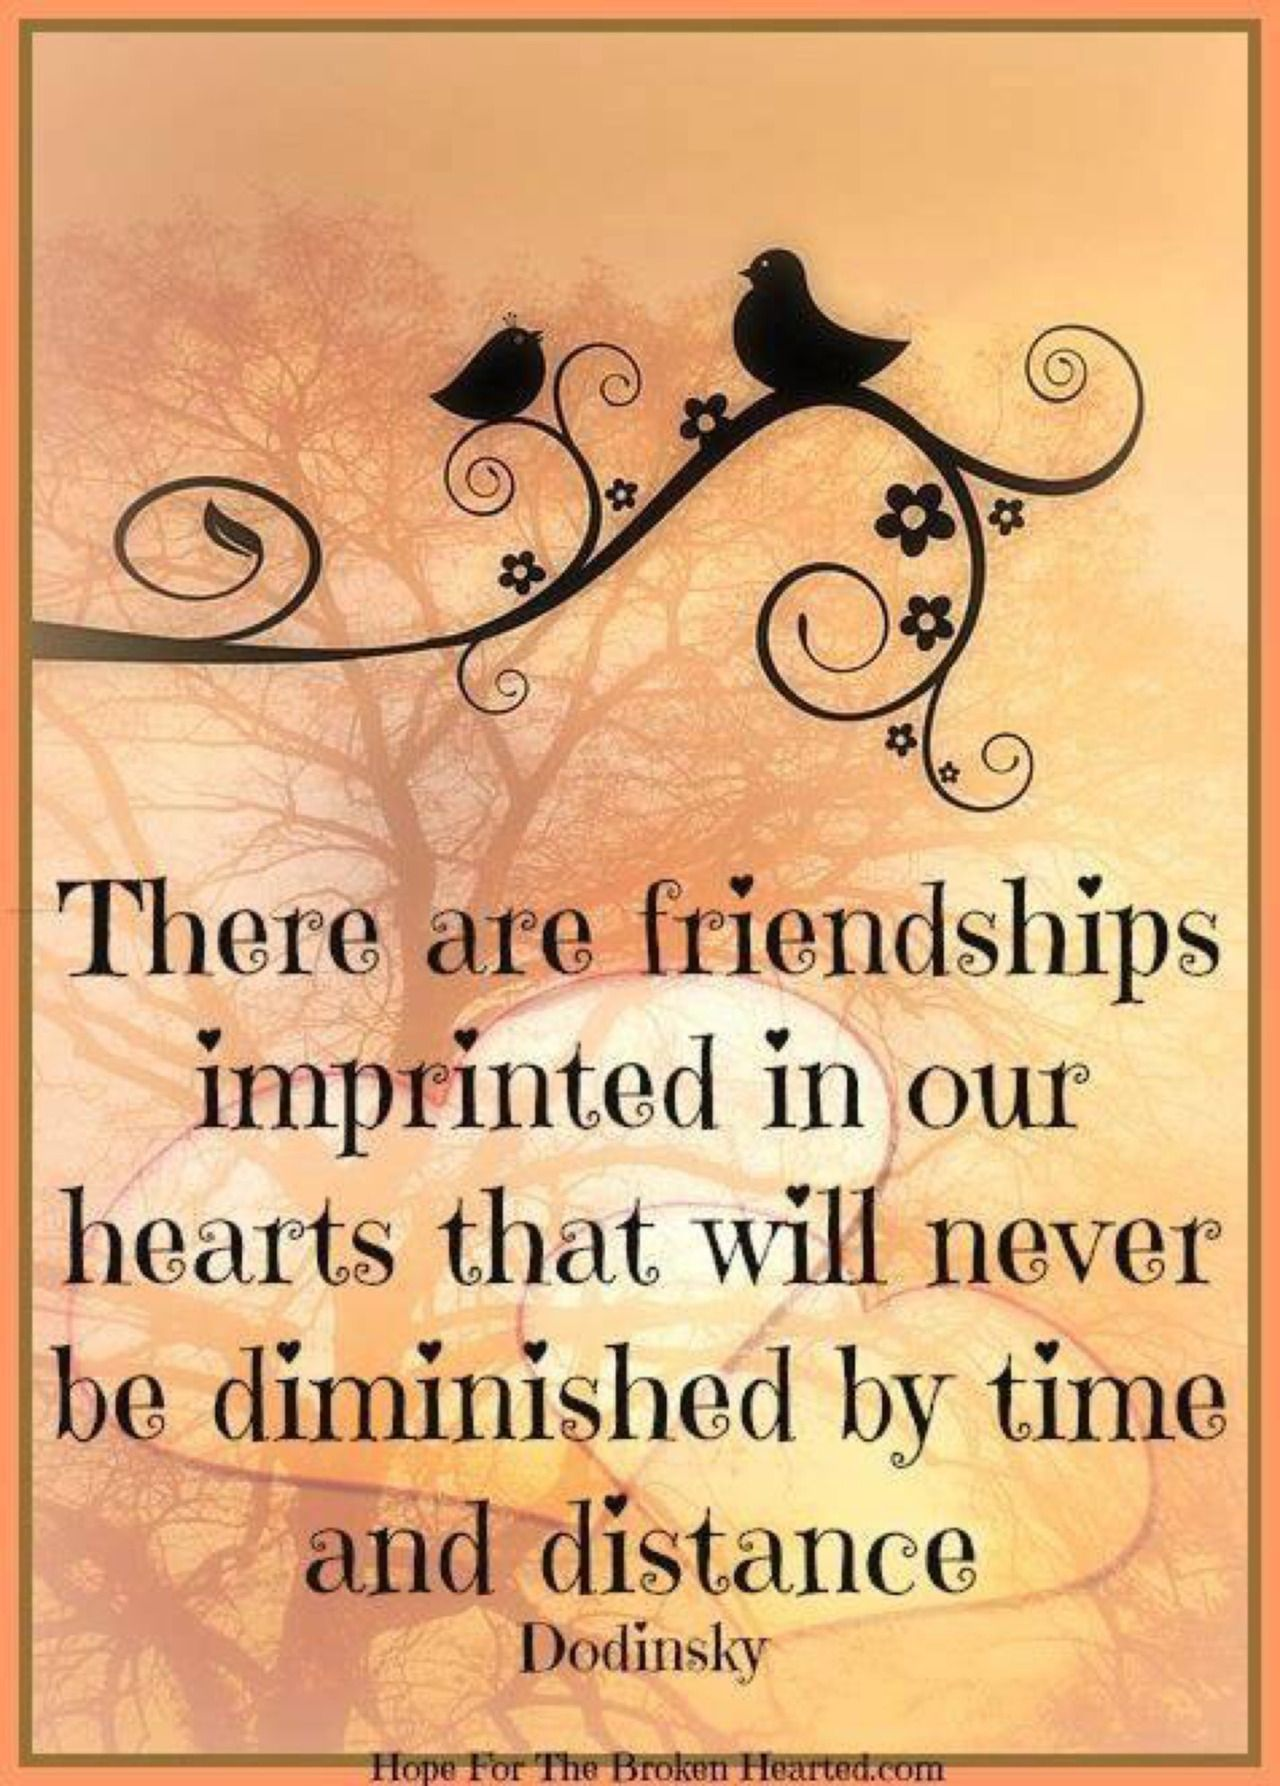 Inspirational Quotes About Friendships Just A Few Of My Favourite Thingsnew Zealand Born Raised And